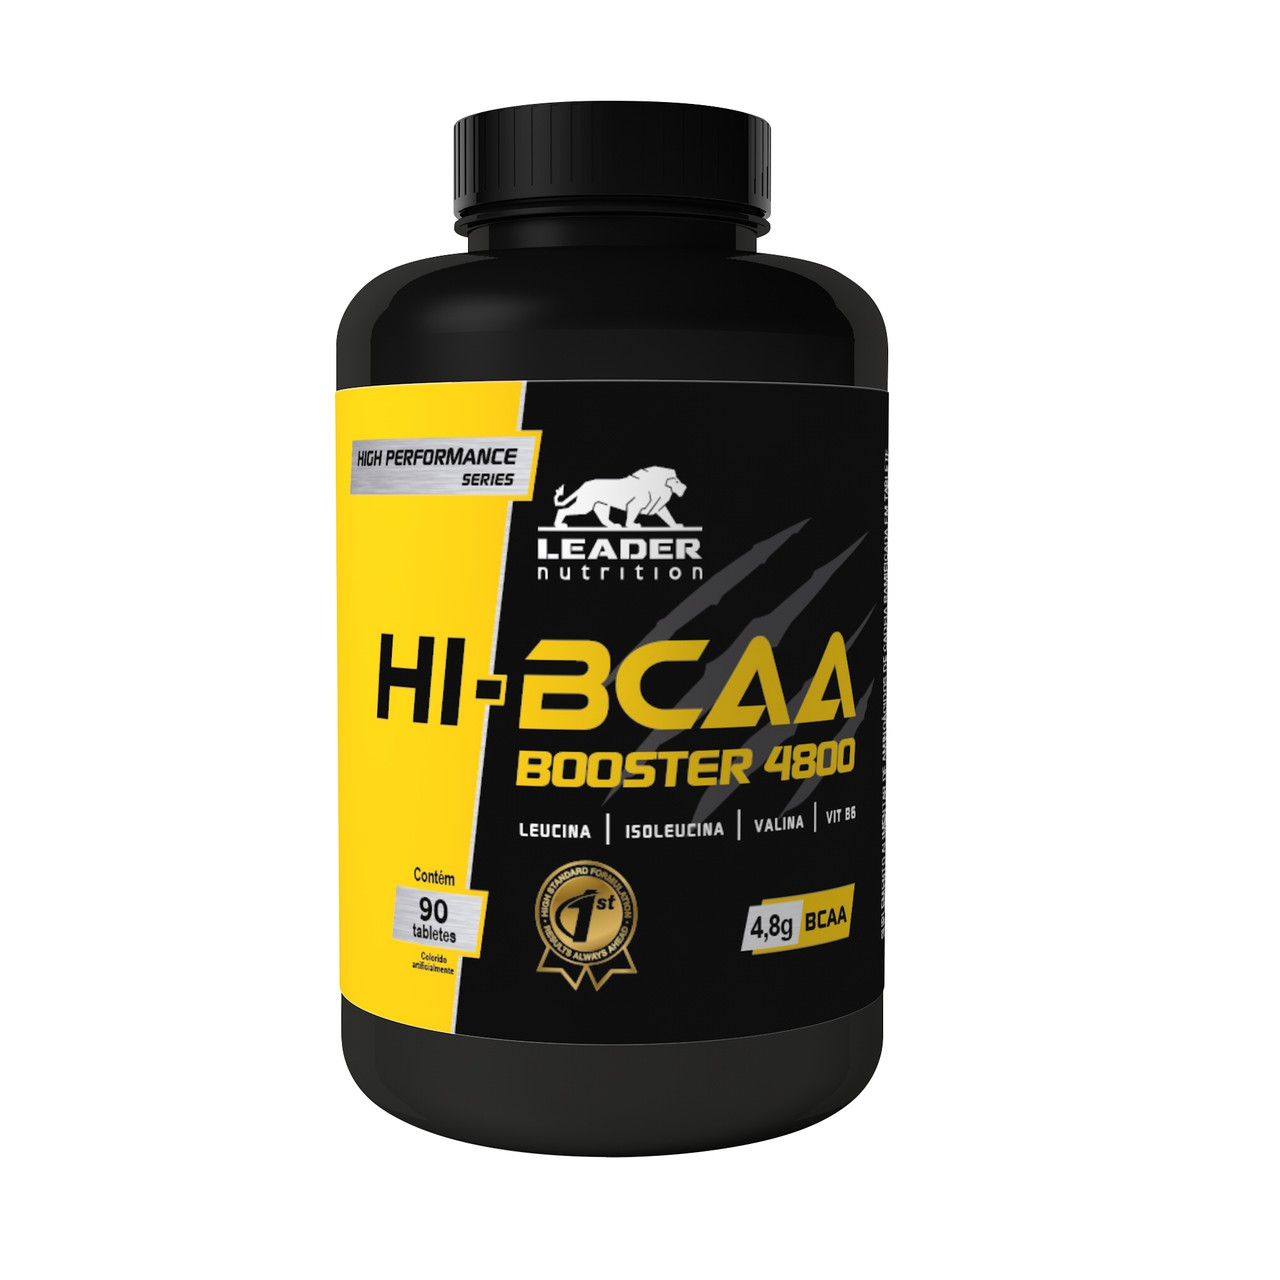 Hi-BCAA Booster 4800 (90 Tabs) - Leader Nutrition